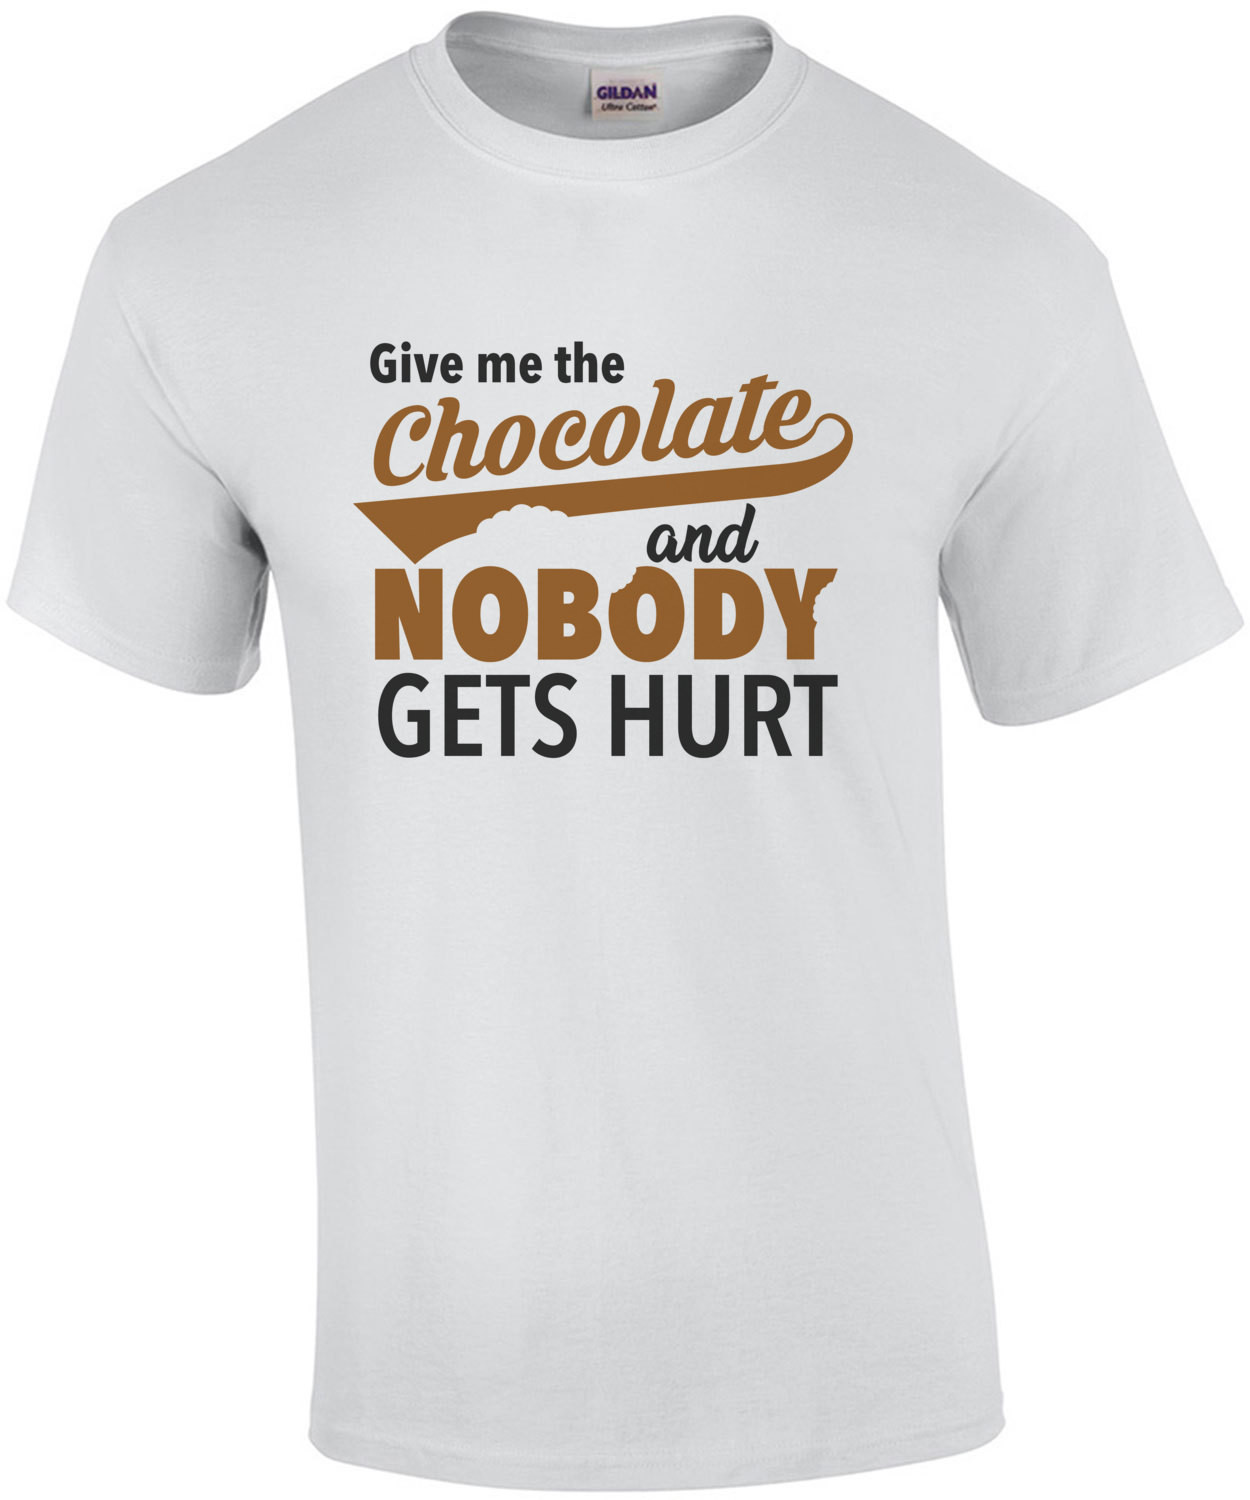 Give me the chocolate and nobody gets hurt - chocolate t-shirt